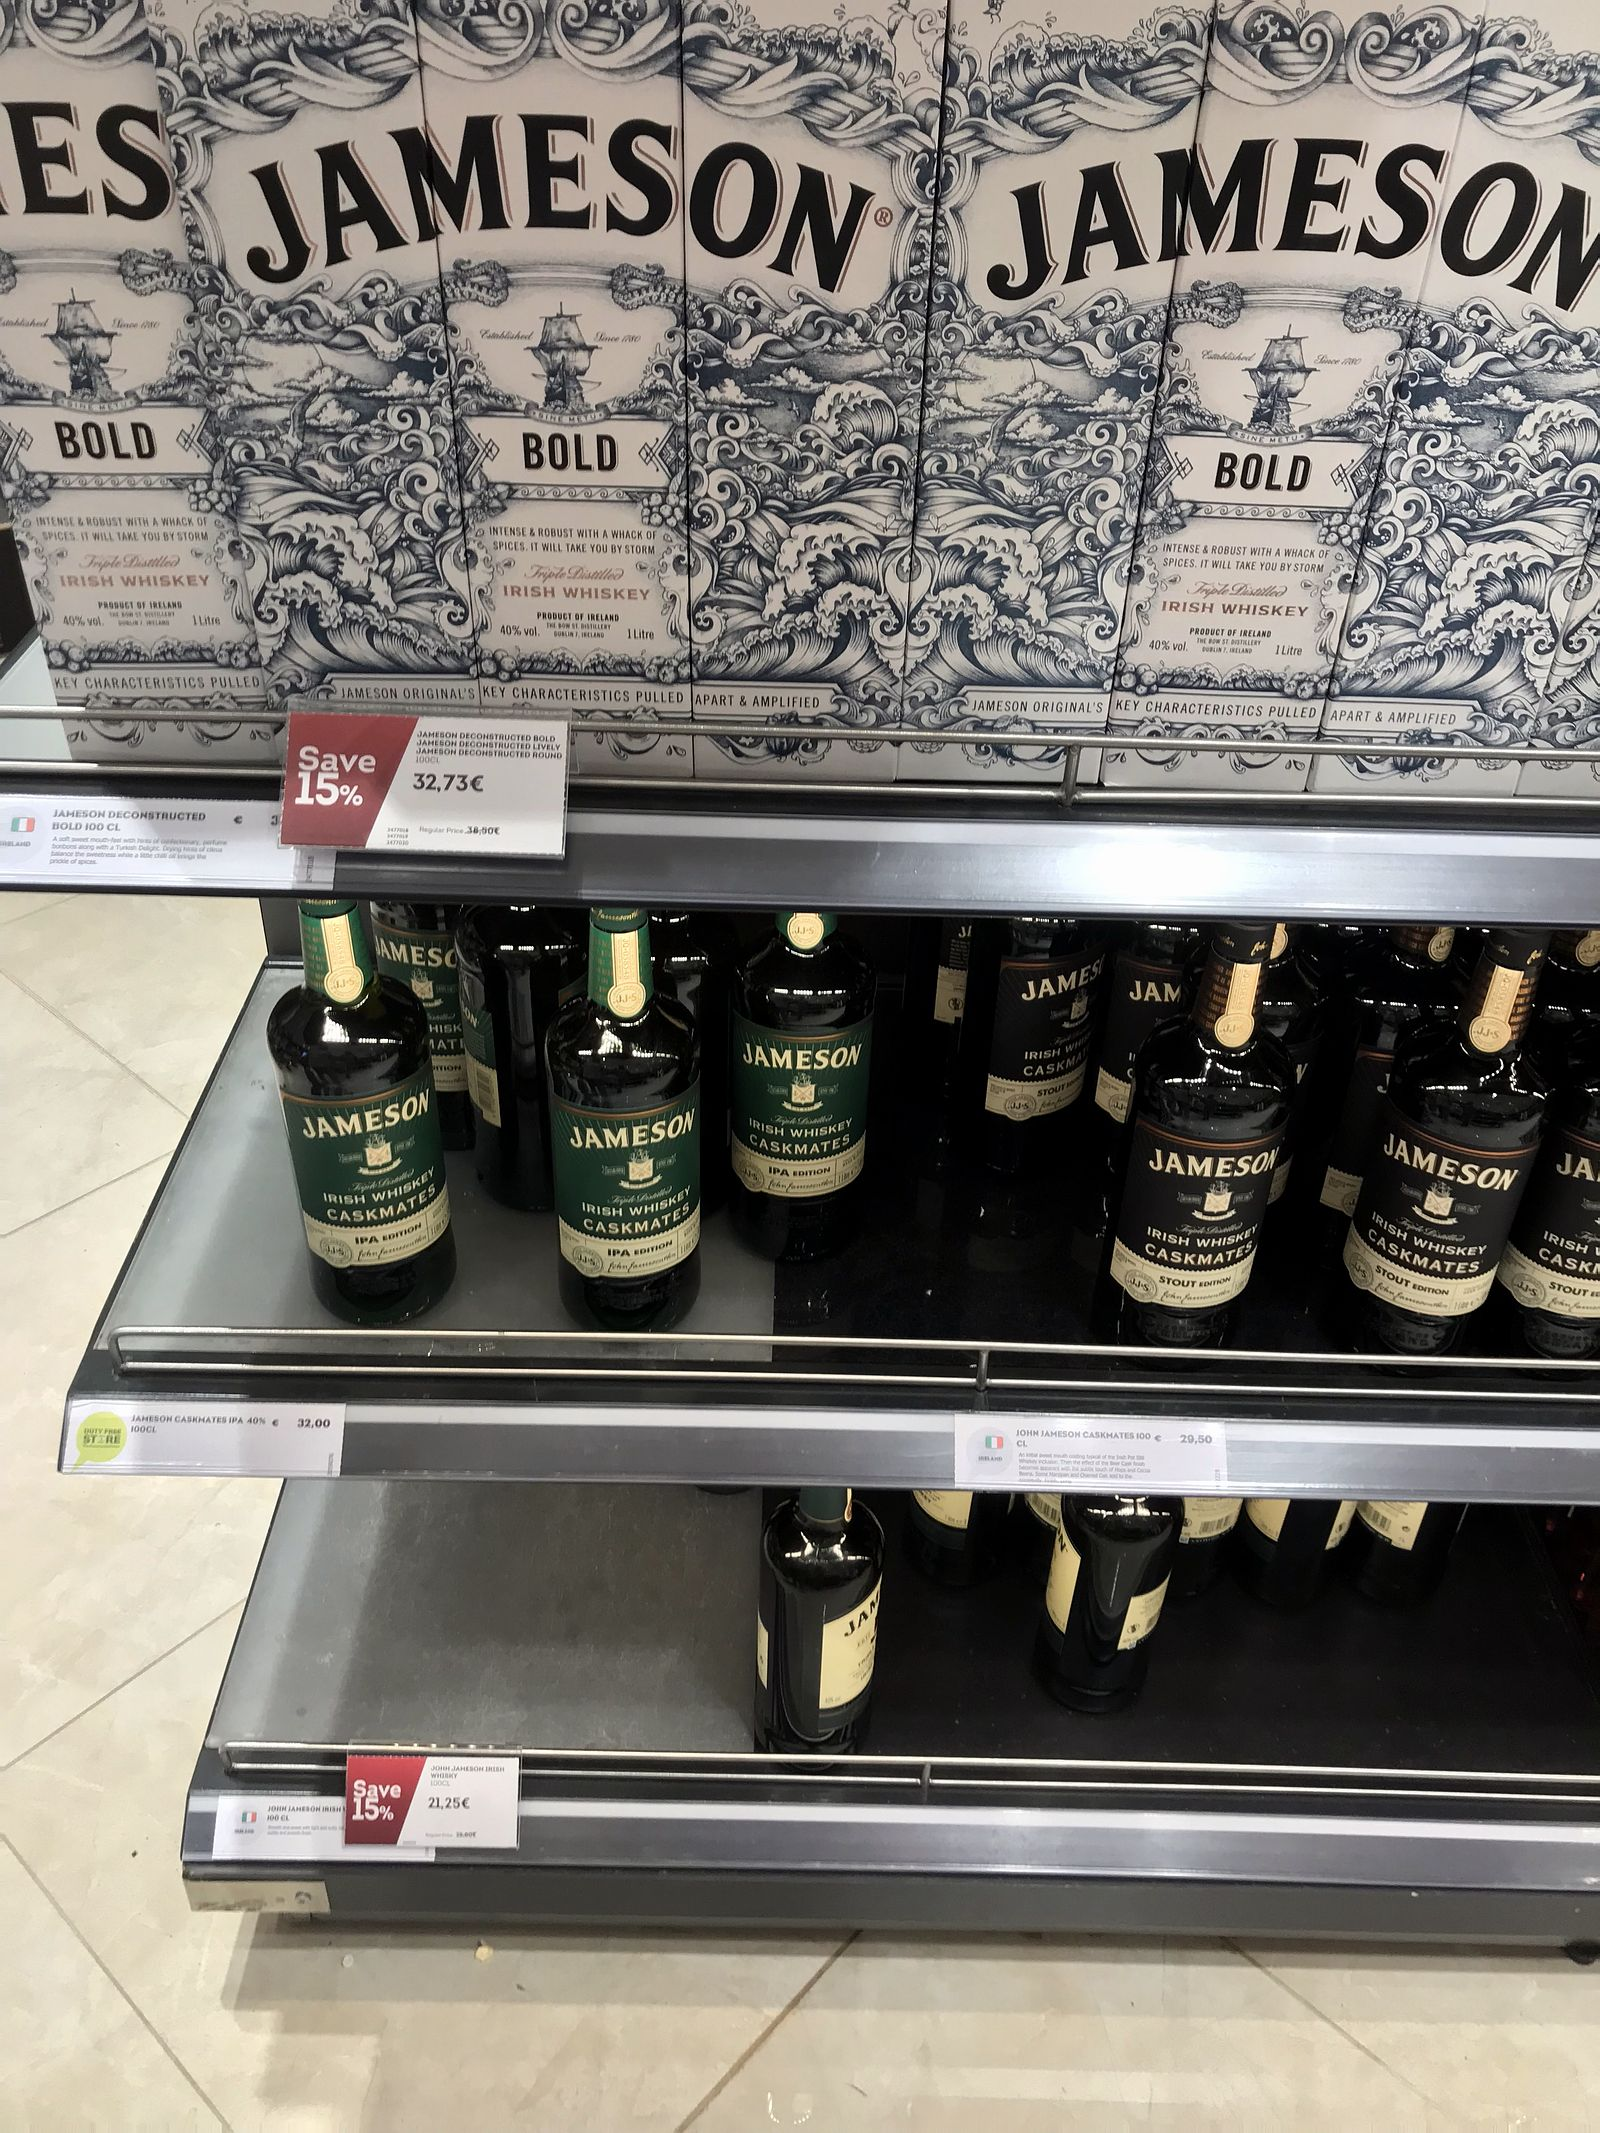 Duty free Antalya, august 2019, whiskey Jameson bold